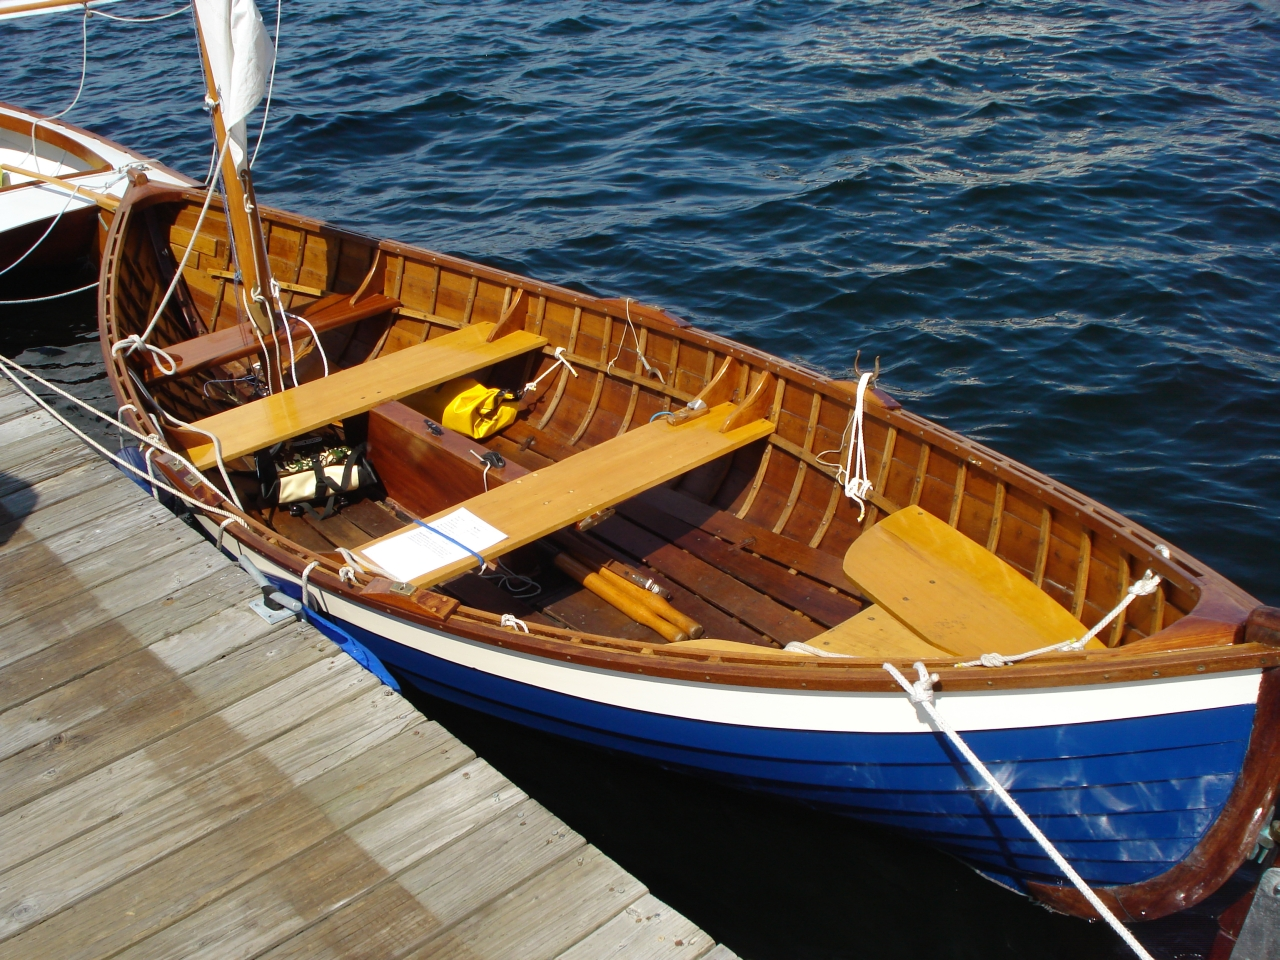 Paul Connor's photos from the Lake Union Wooden Boat Festival at the Centre for Wooden Boats ...